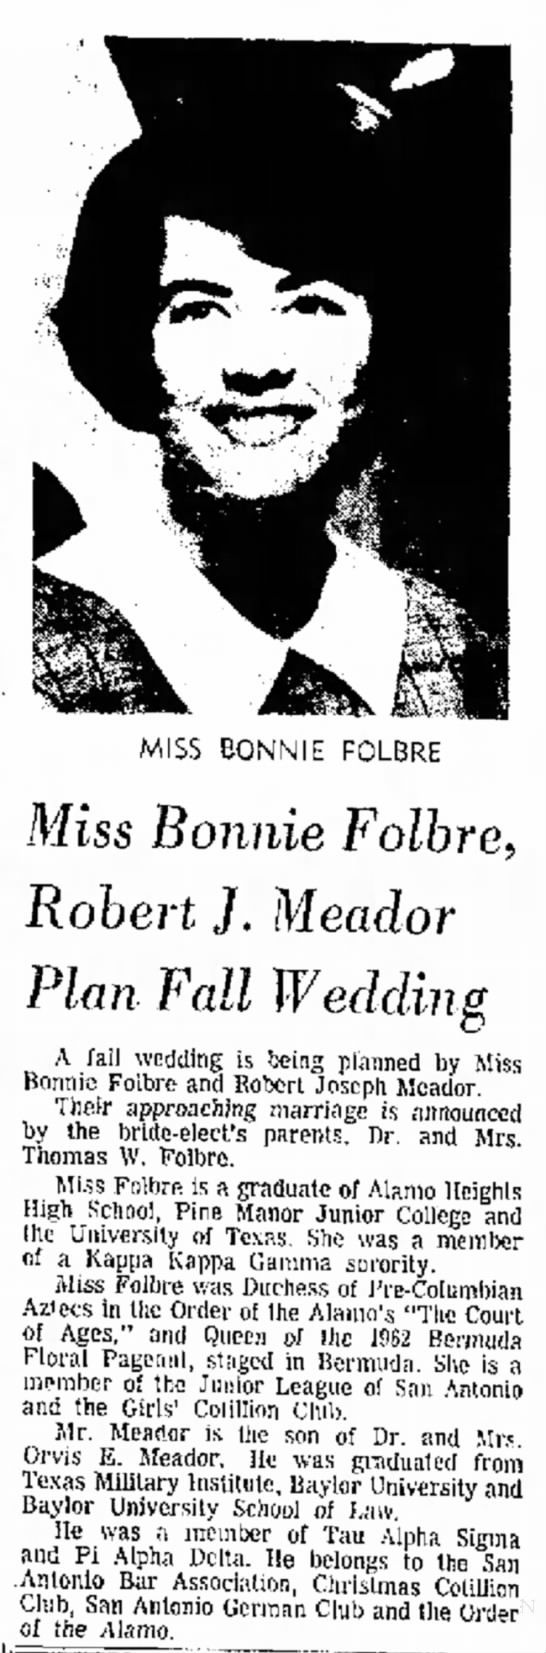 Folbre Meador wedding - very you a done what MISS BONNIE FOLBRE Miss...